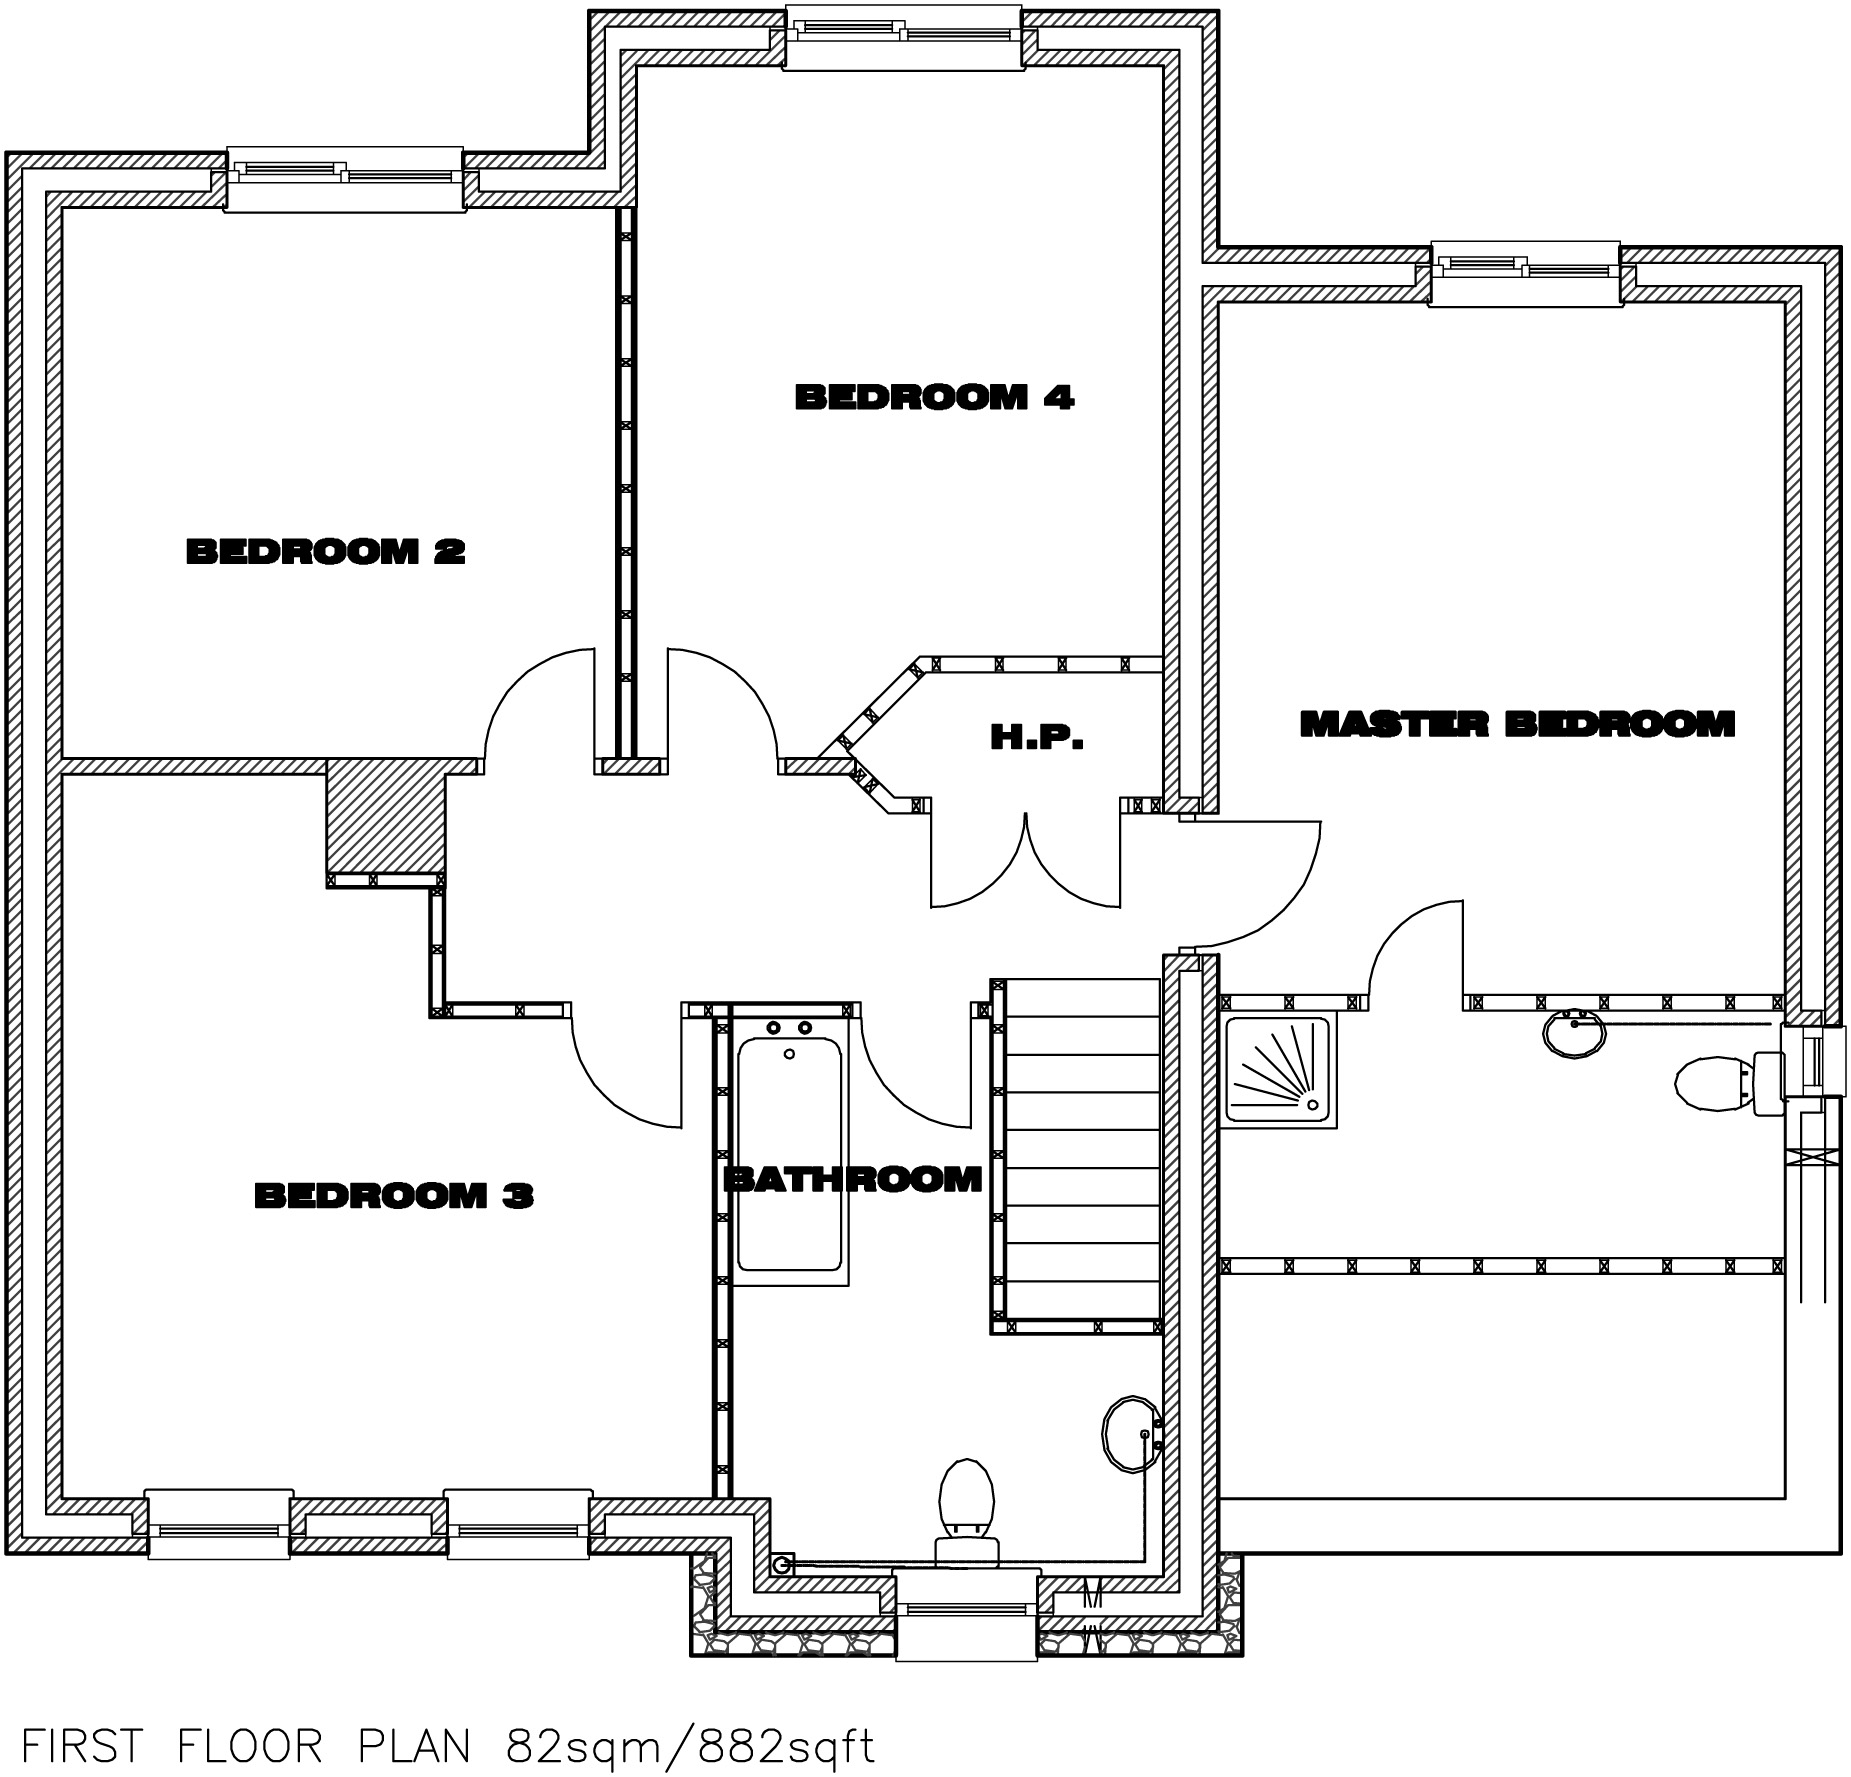 House Type C First Floor